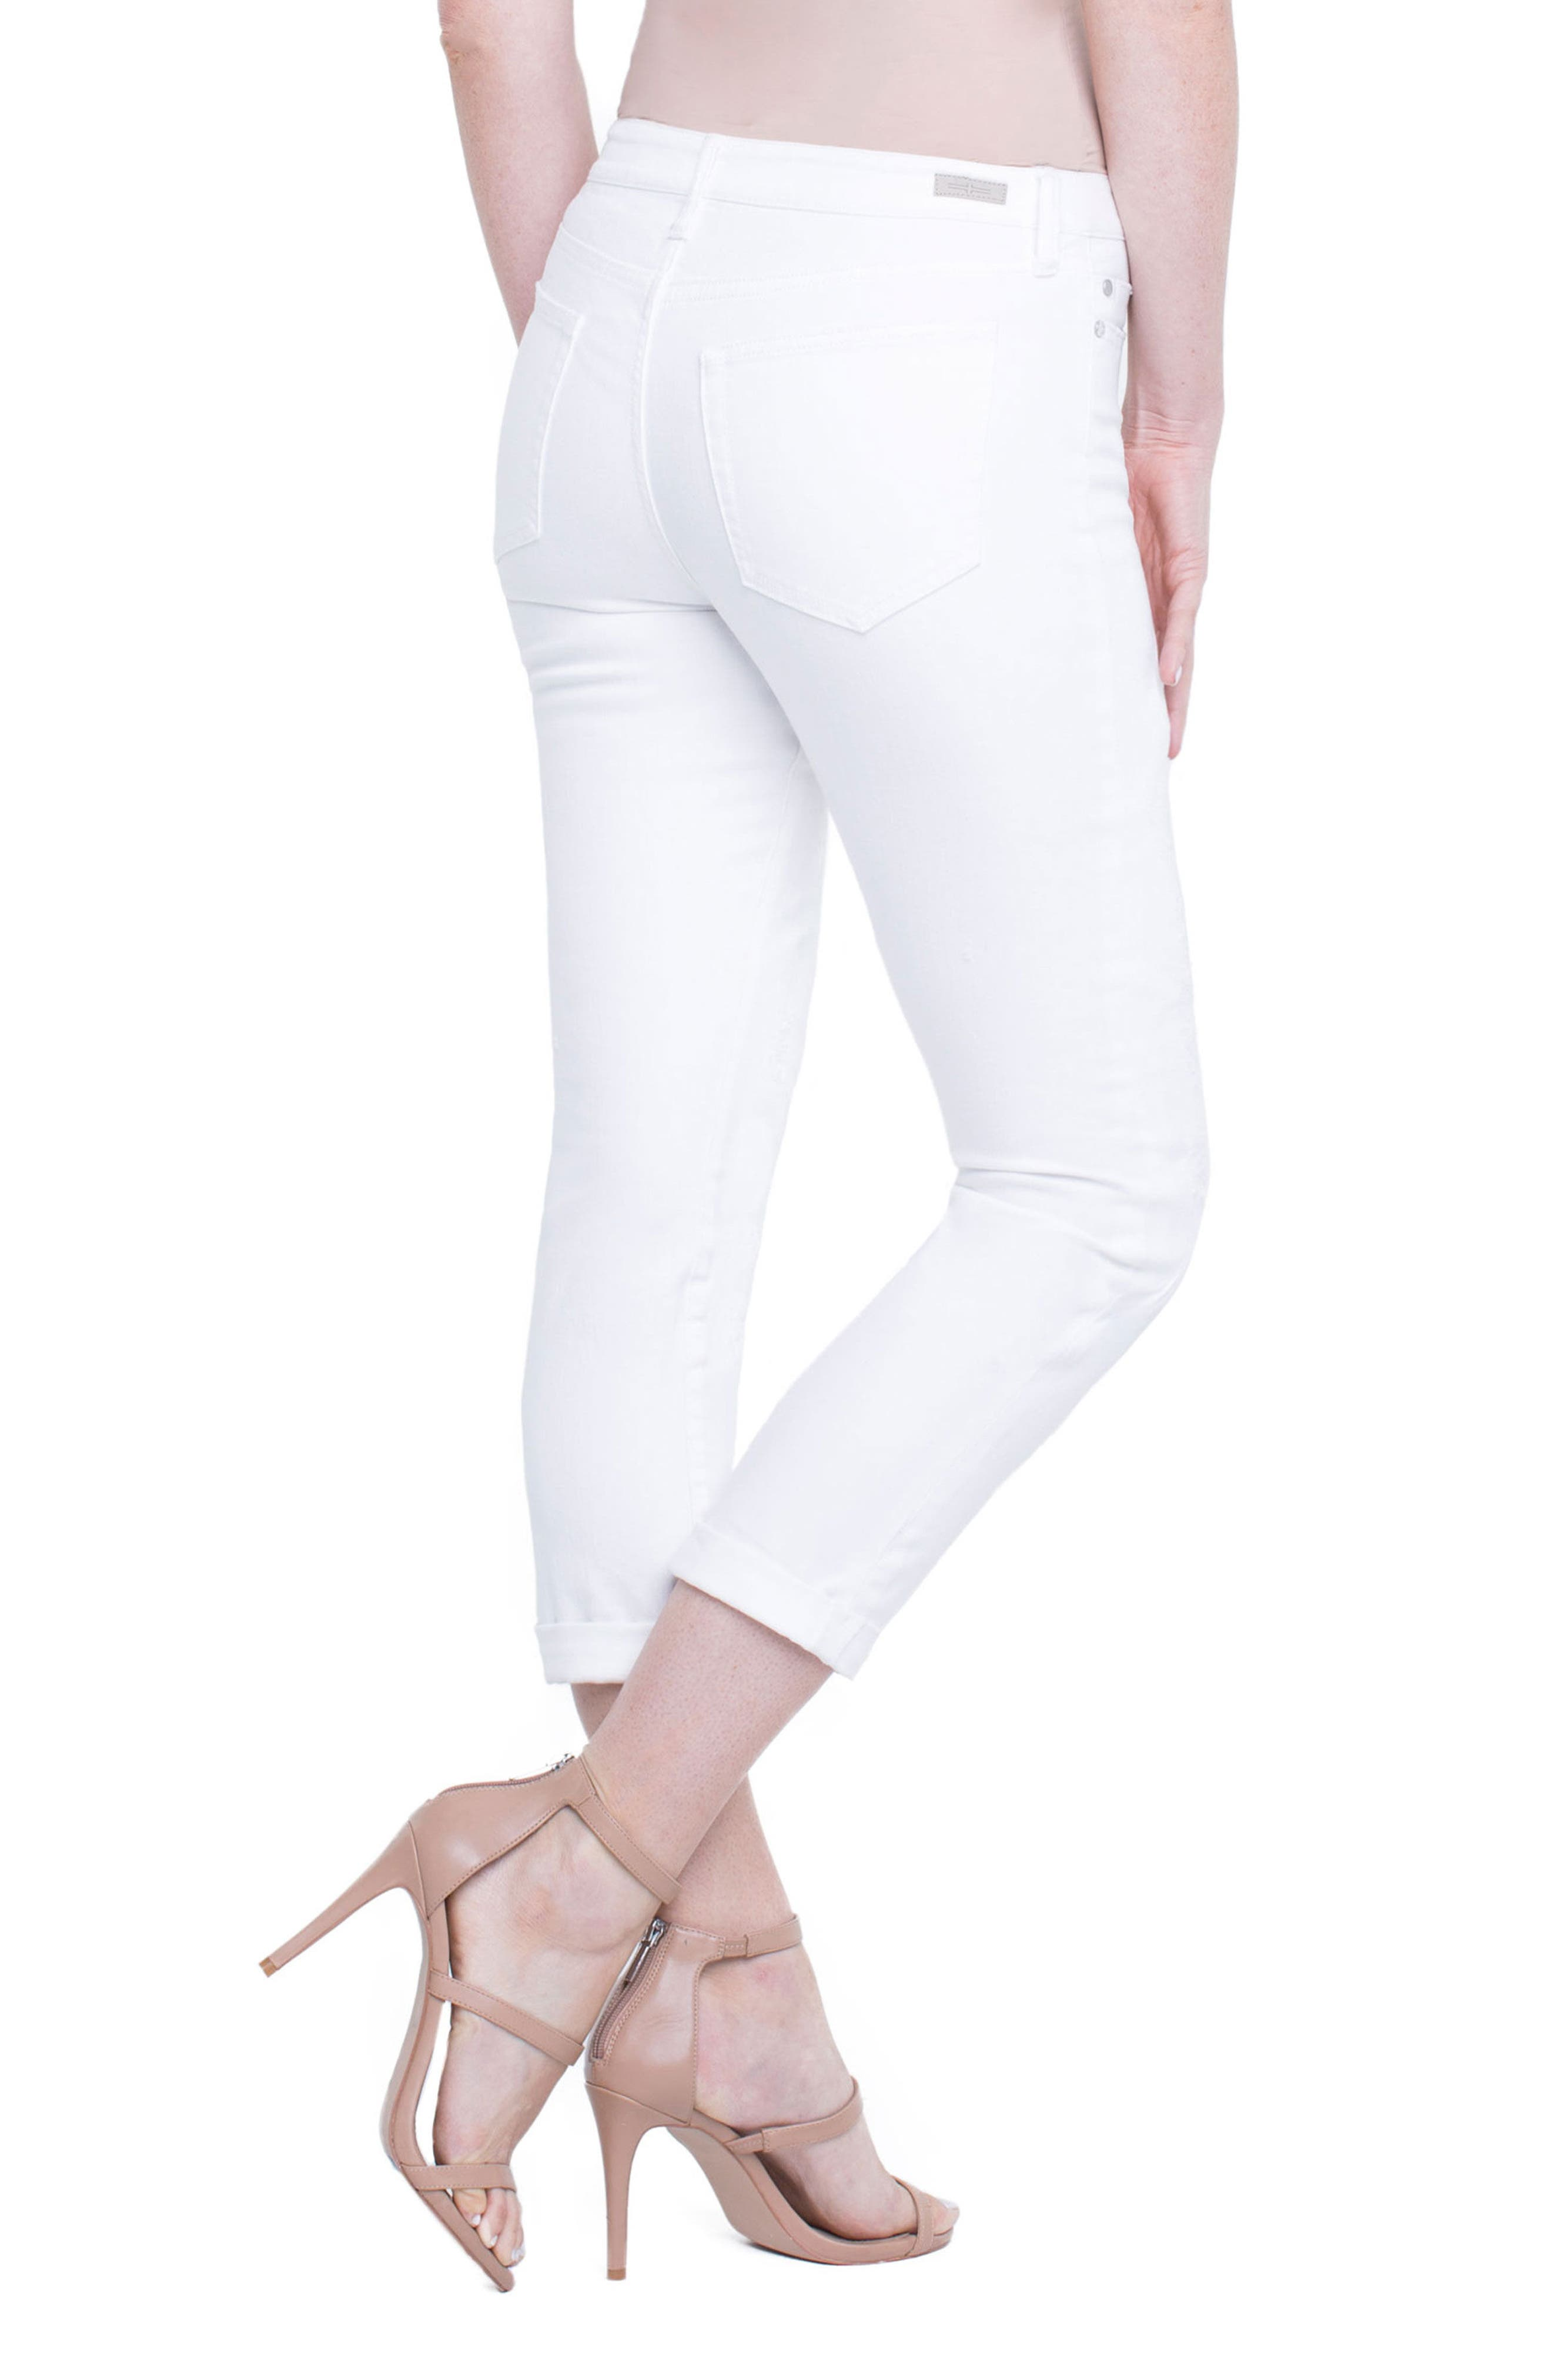 Marley Girlfriend Jeans,                             Alternate thumbnail 3, color,                             Luna White Mended